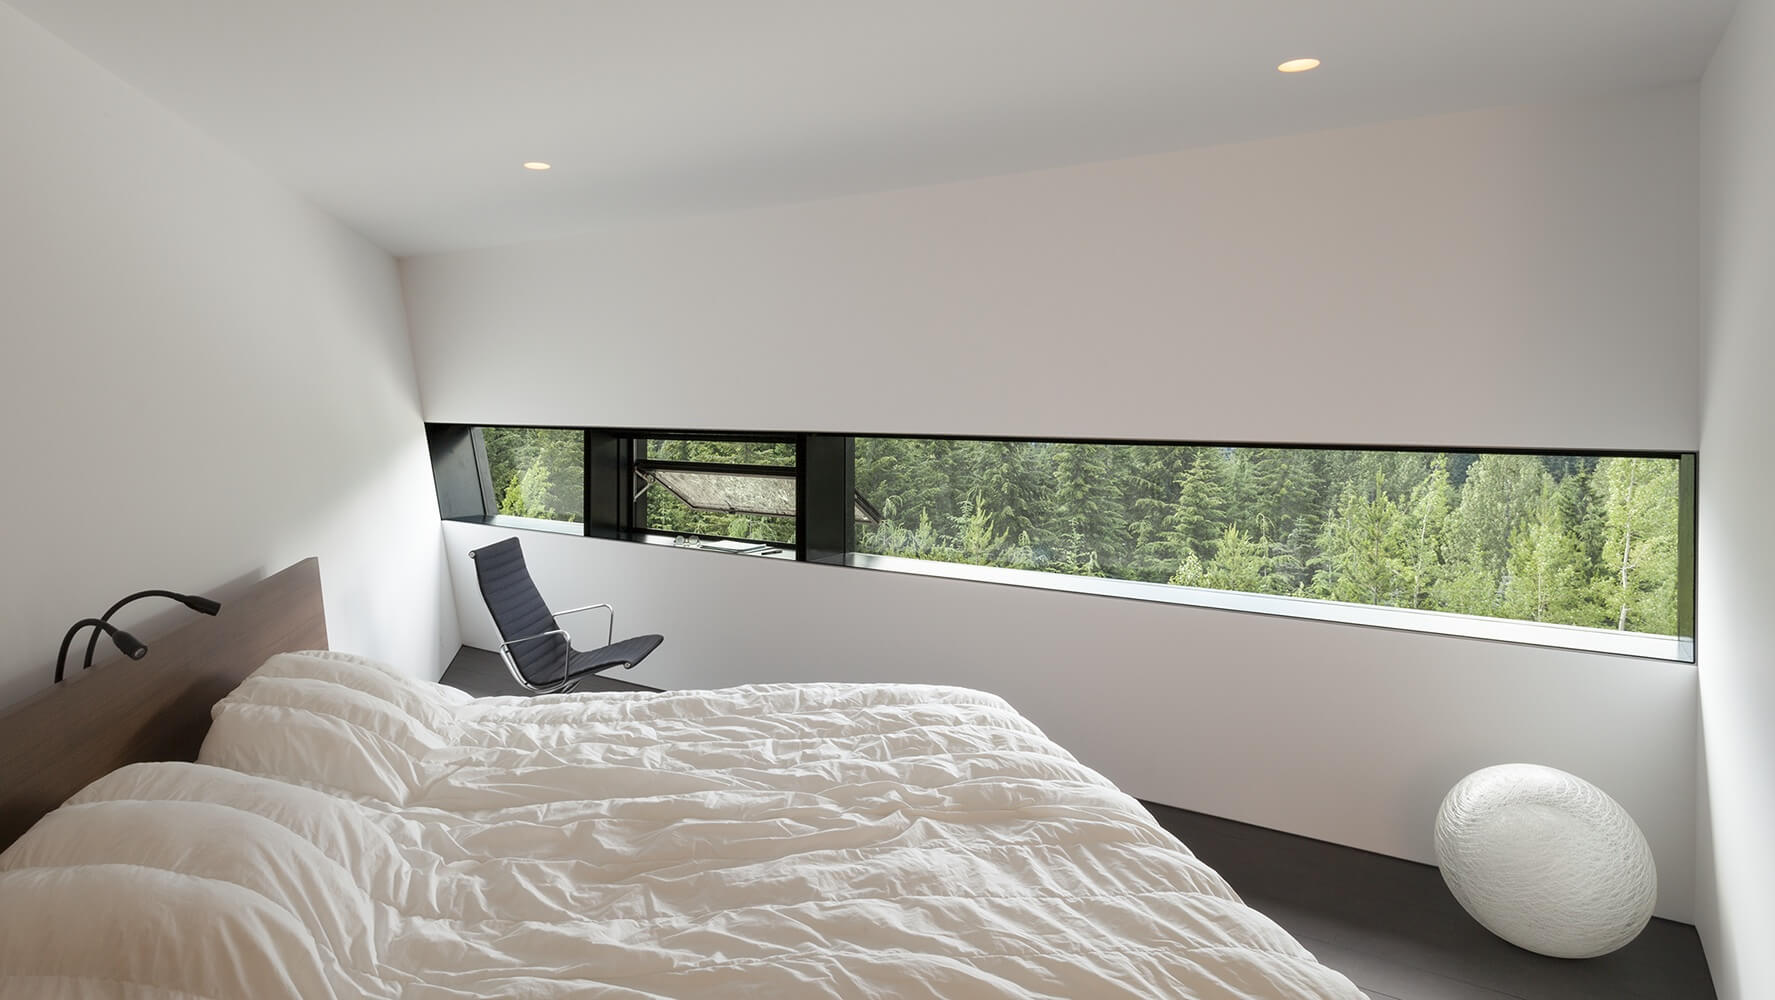 On the other side of the bridge is the primary suite, an angular room in white with a narrow panoramic window with a single opening pane. The bed is minimalist, with a low-profile headboard and two small adjustable lamps peeking over the top, perfect for reading by.